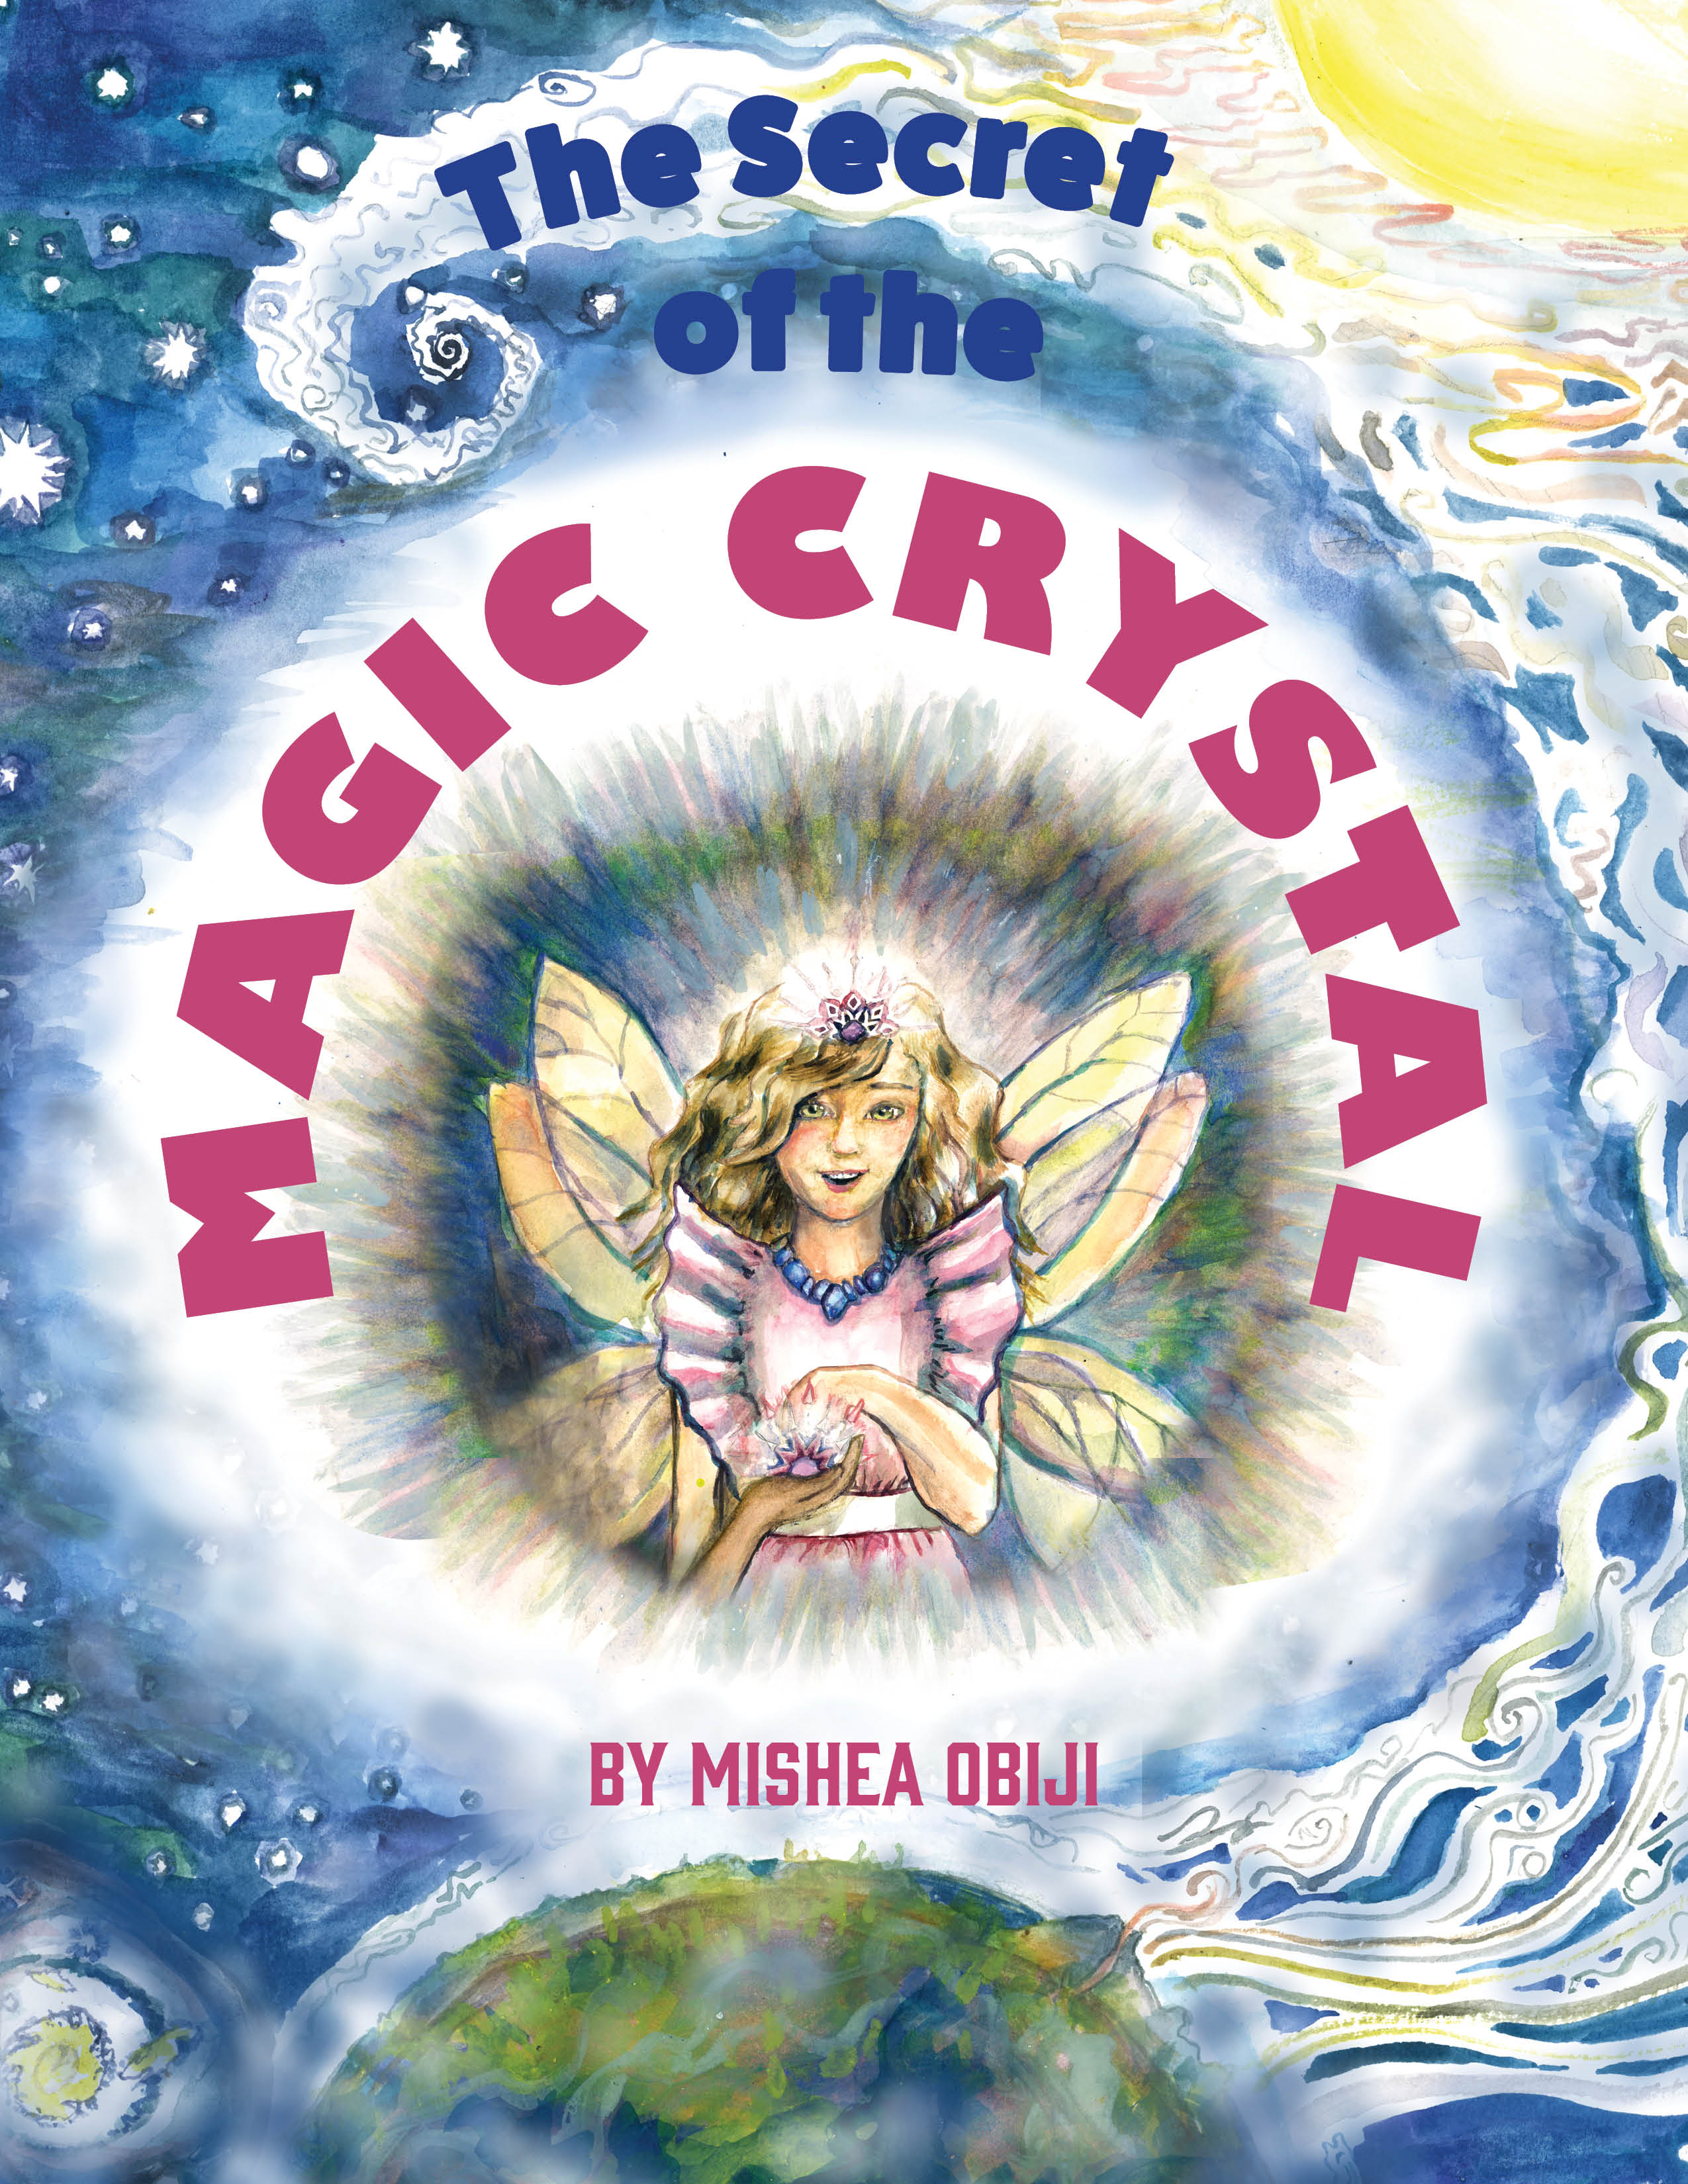 The Secret of the Magic Crystal